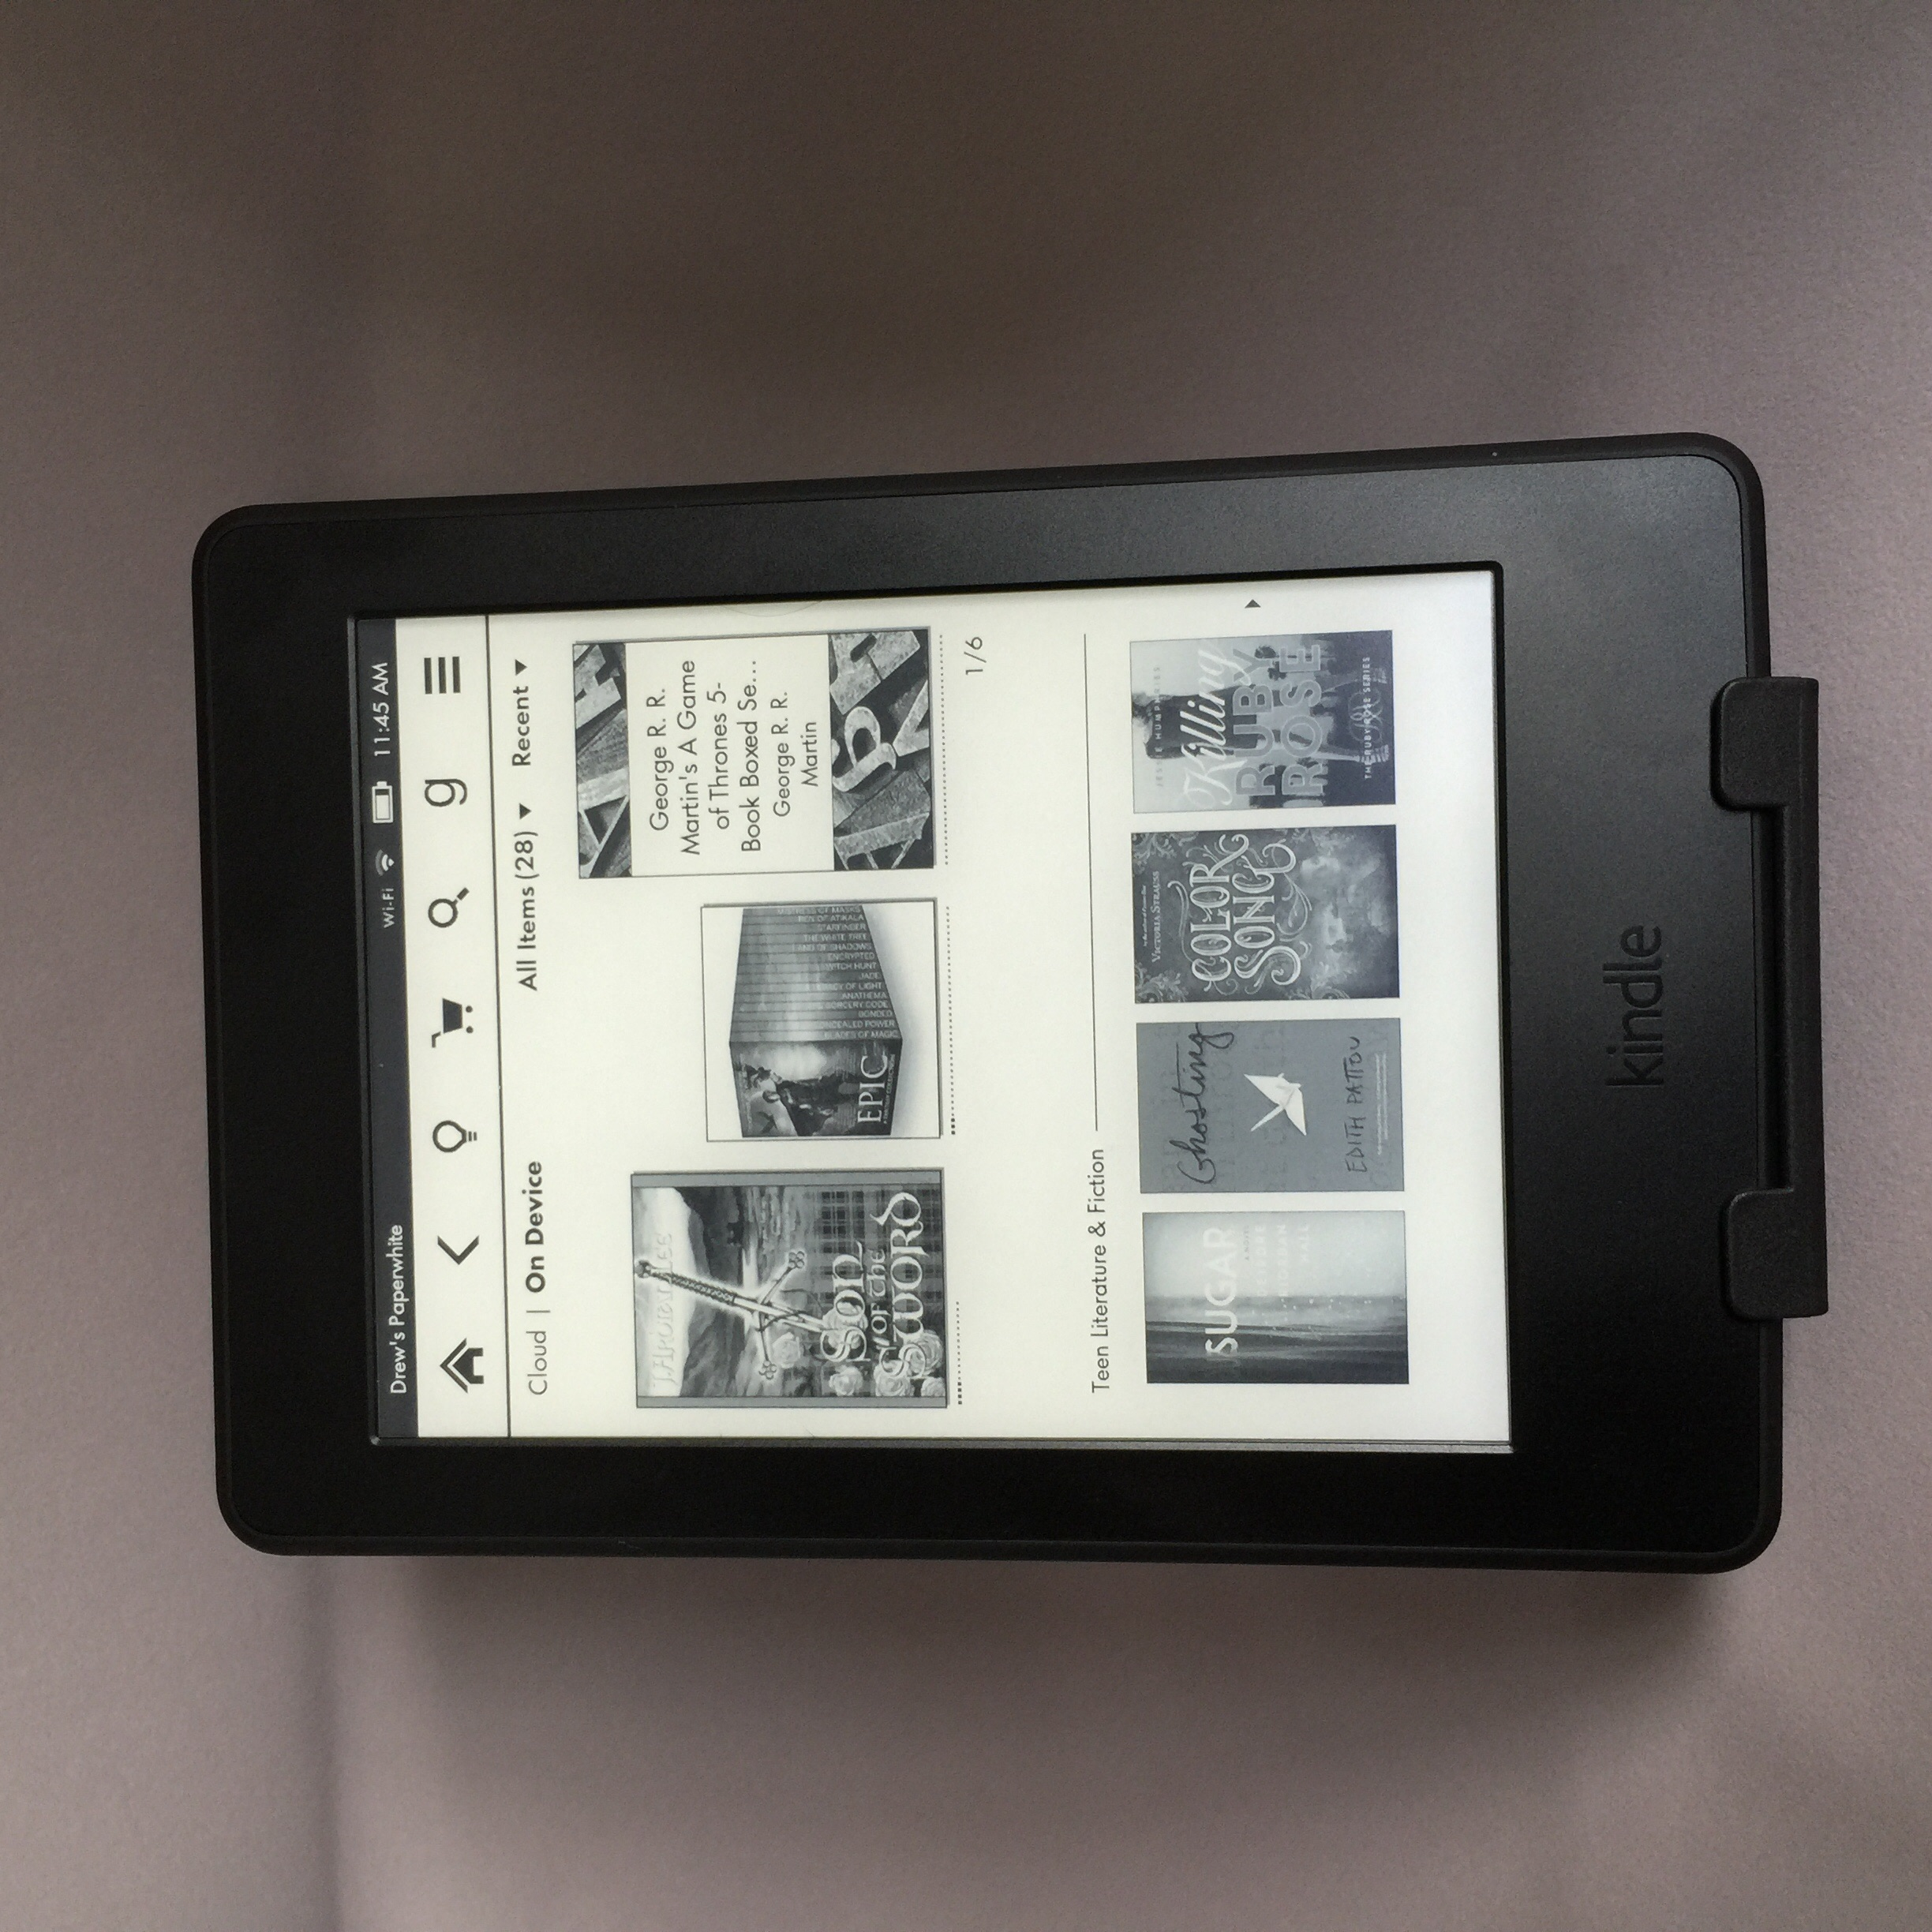 Amazon's newest version of the Paperwhite takes a few more steps toward perfection